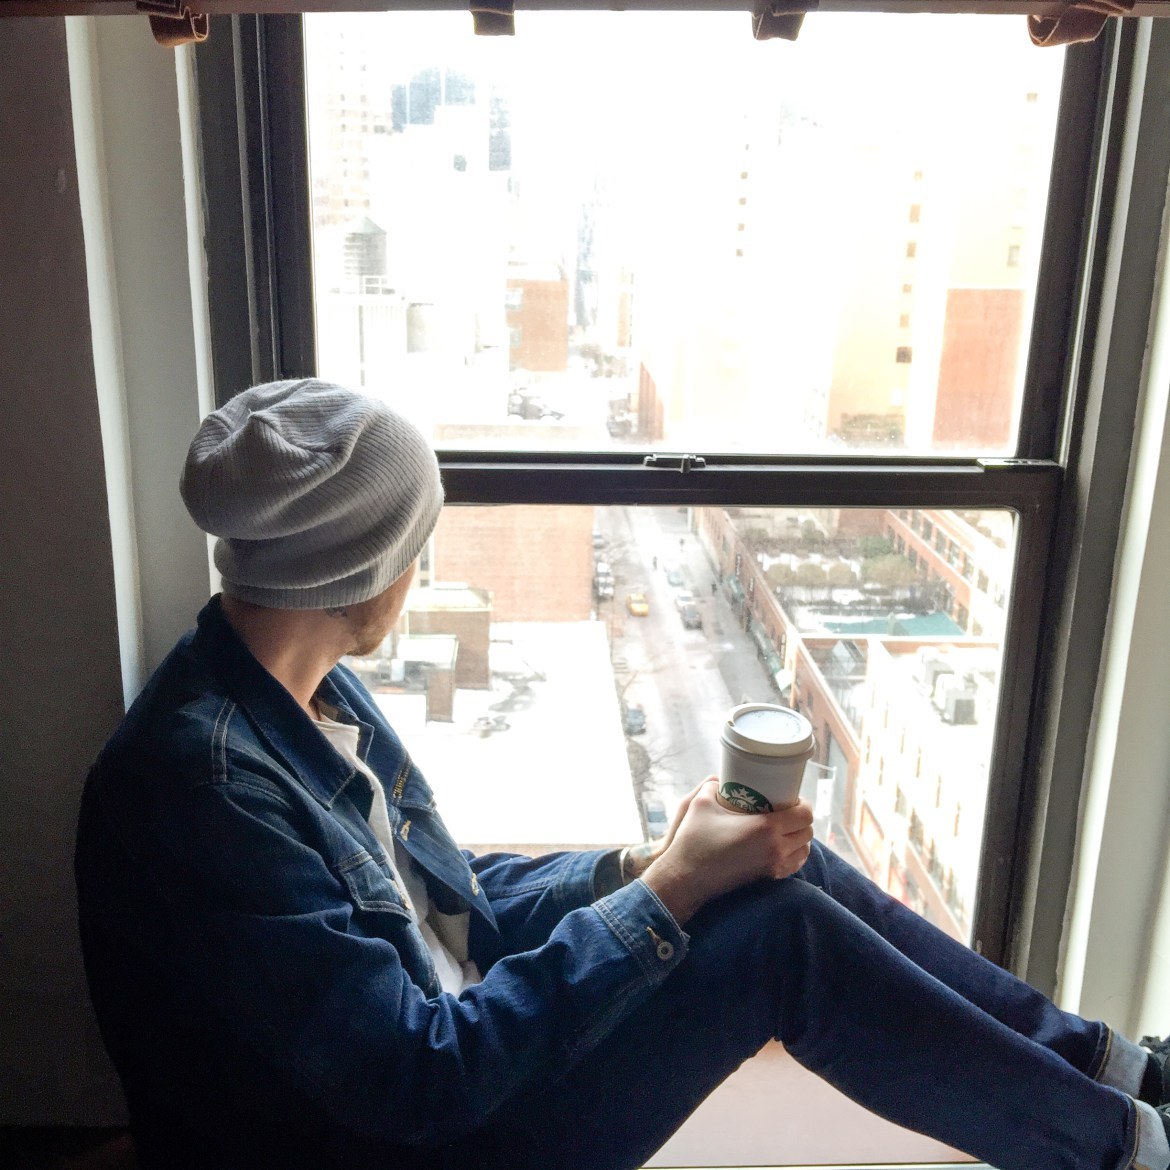 The Kentucky Gent, a men's fashion and lifestyle blogger, shares advice on knowing your limits.